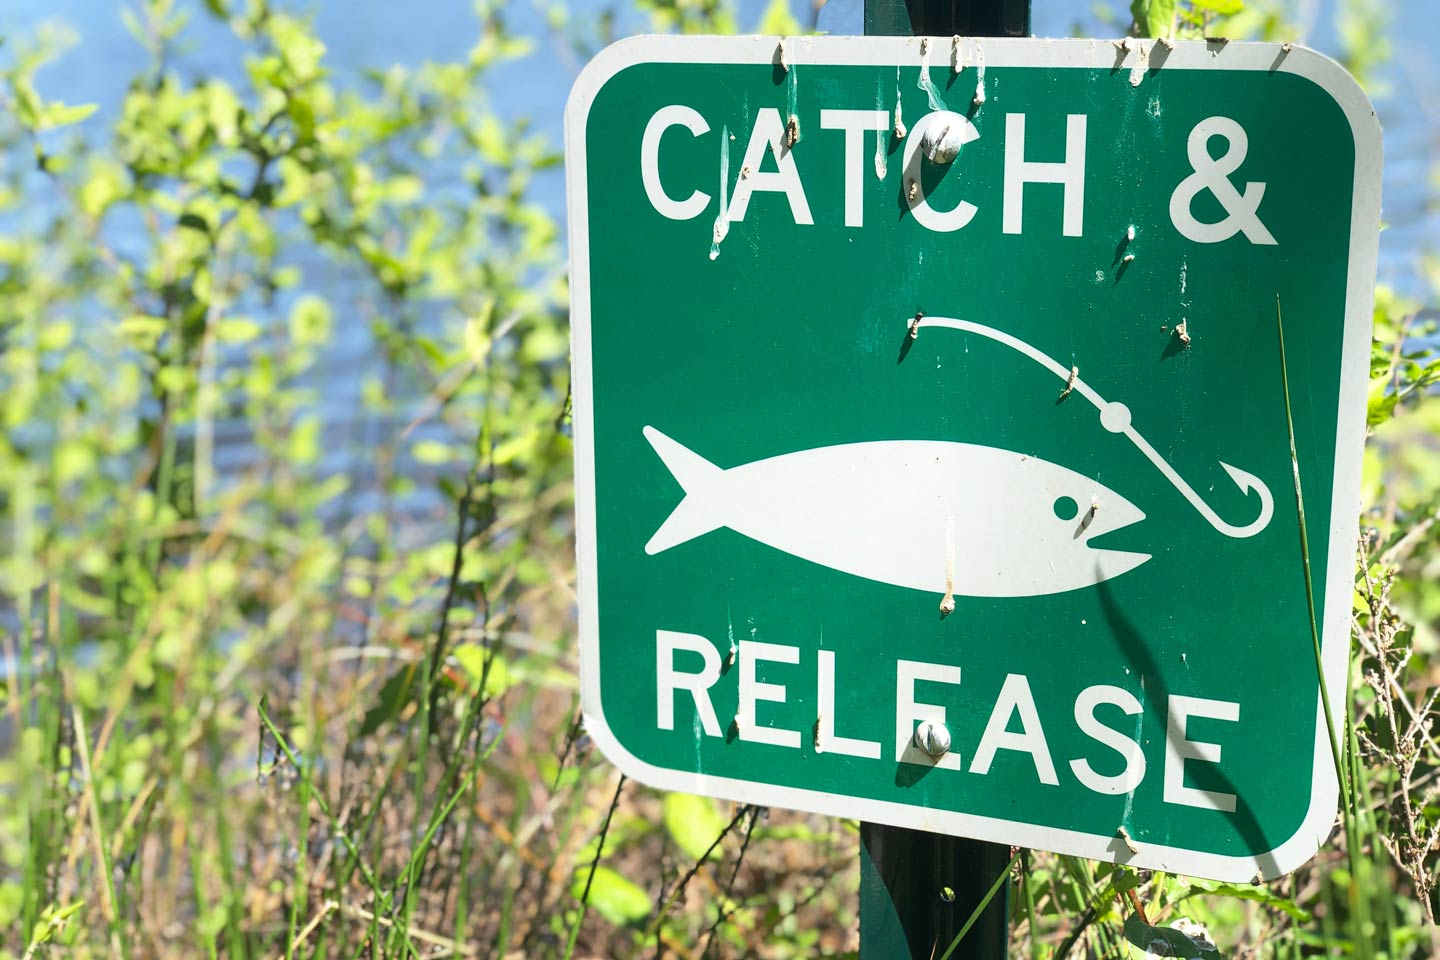 Catch and release fishing signage in New Smyrna Beach